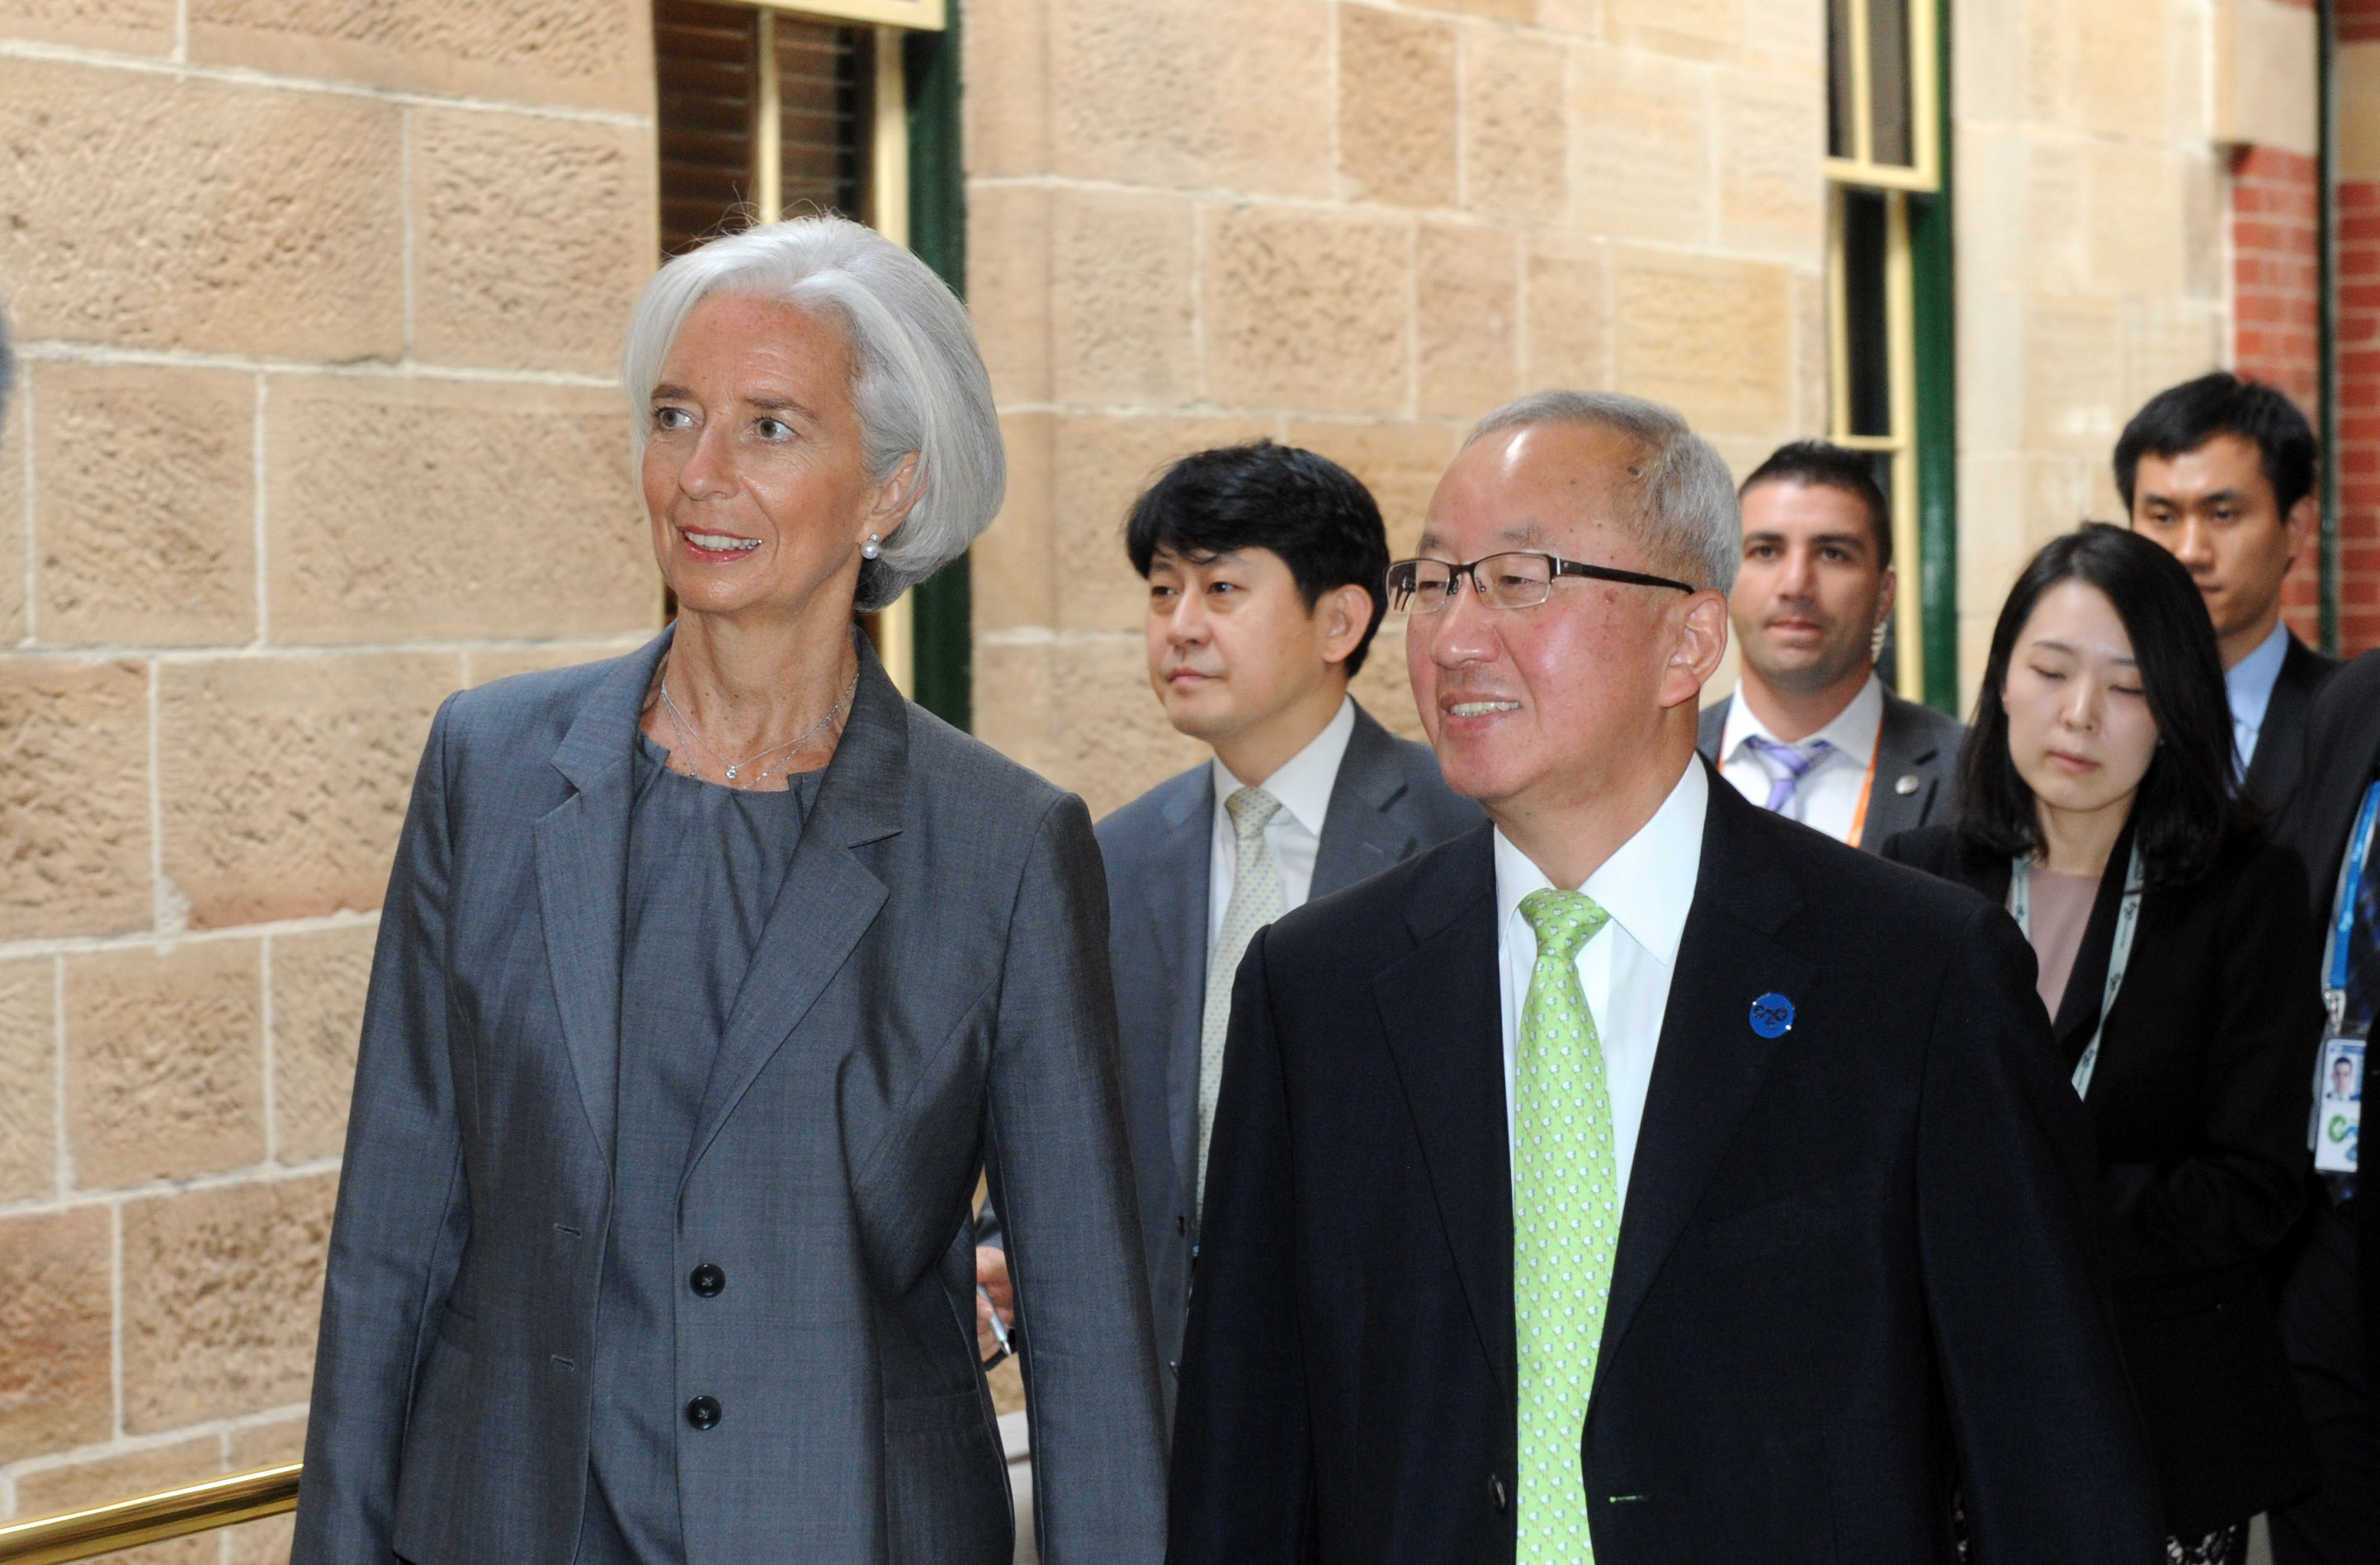 Deputy Prime Minister Hyun meets with IMF Managing Director Christine Lagarde